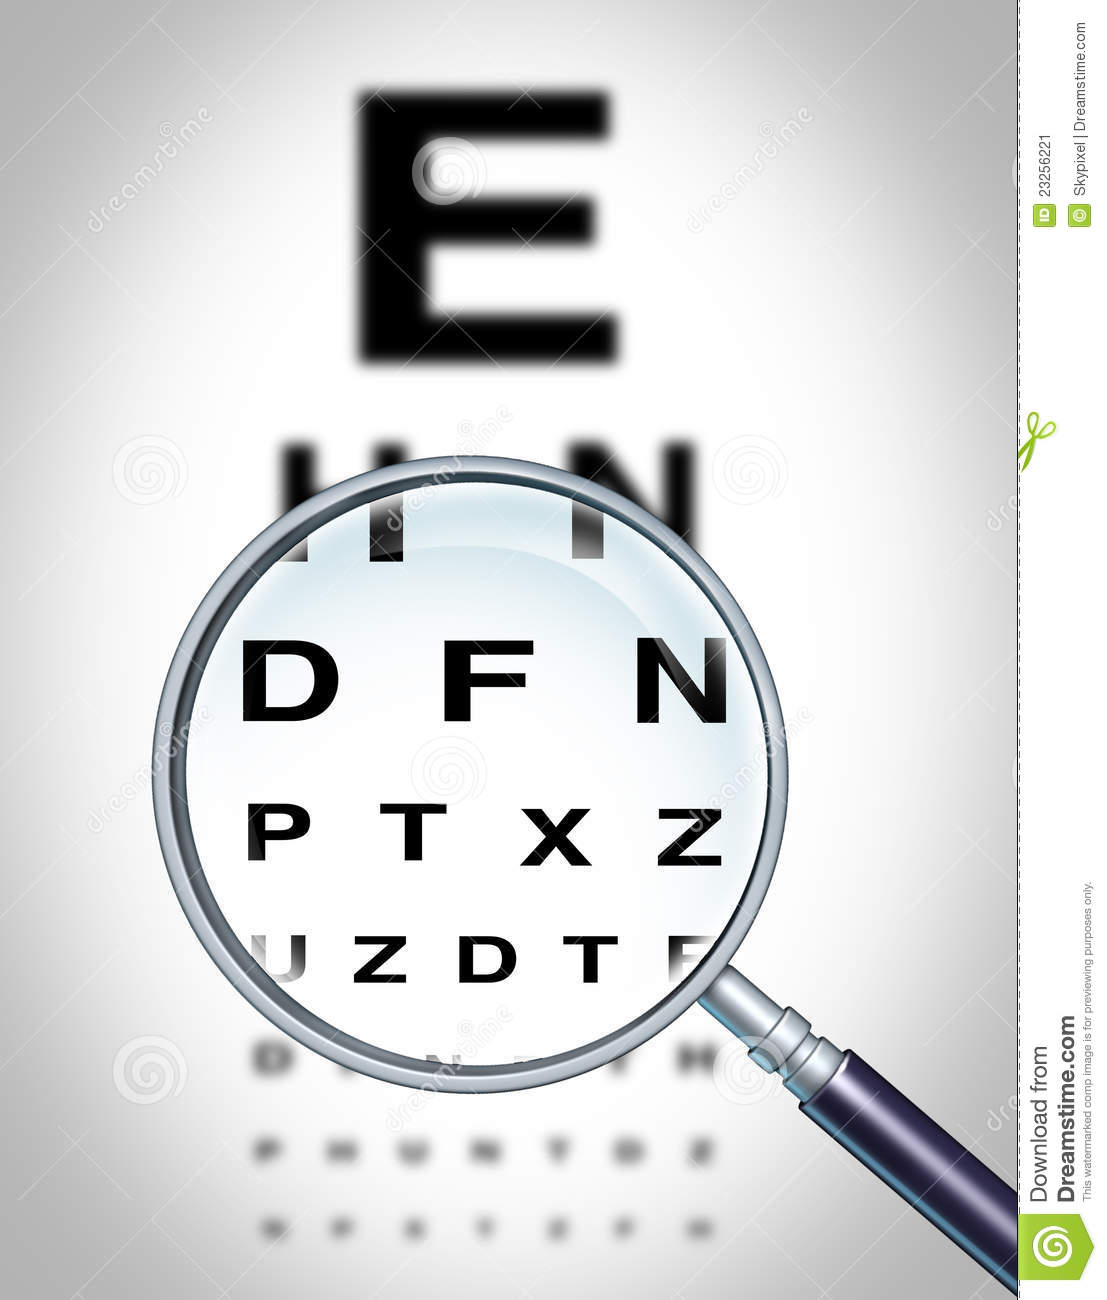 Human Eye Vision Stock Image